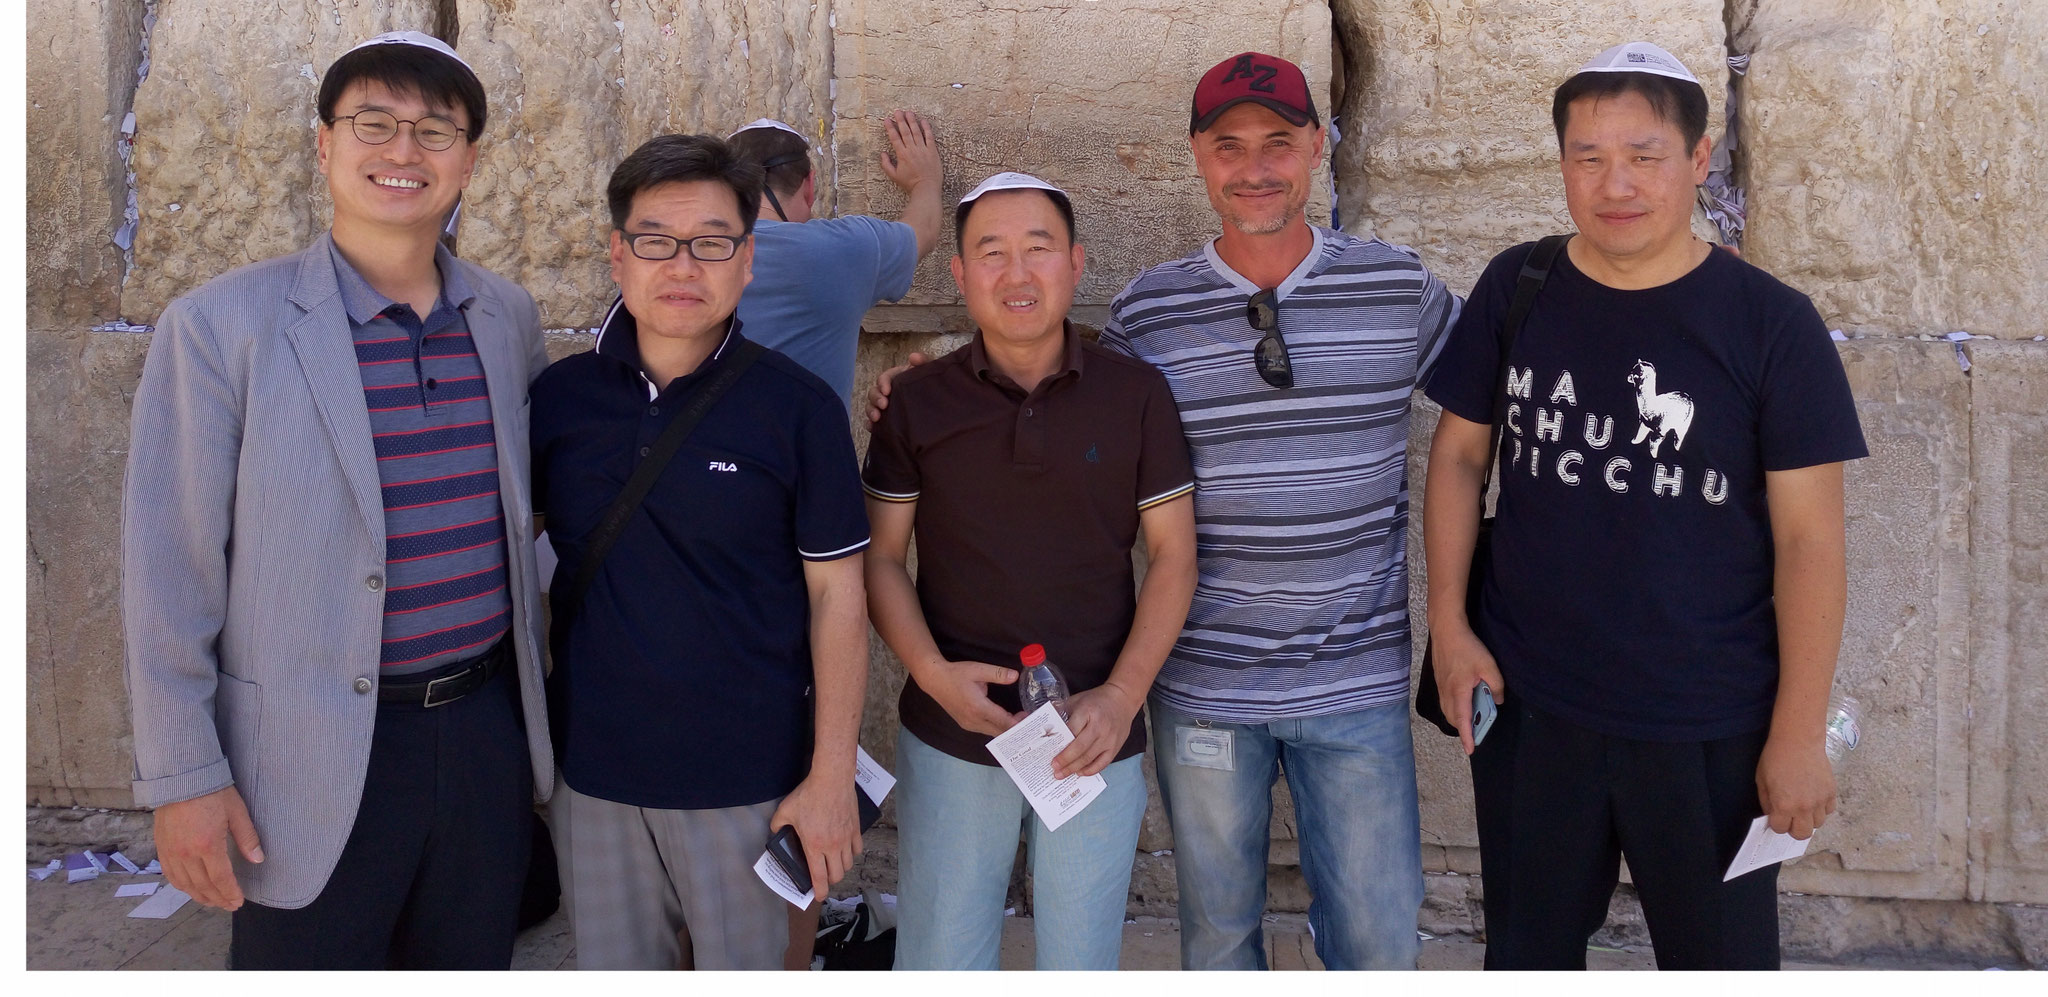 With South Korean tourists at the Western Wall, 2017